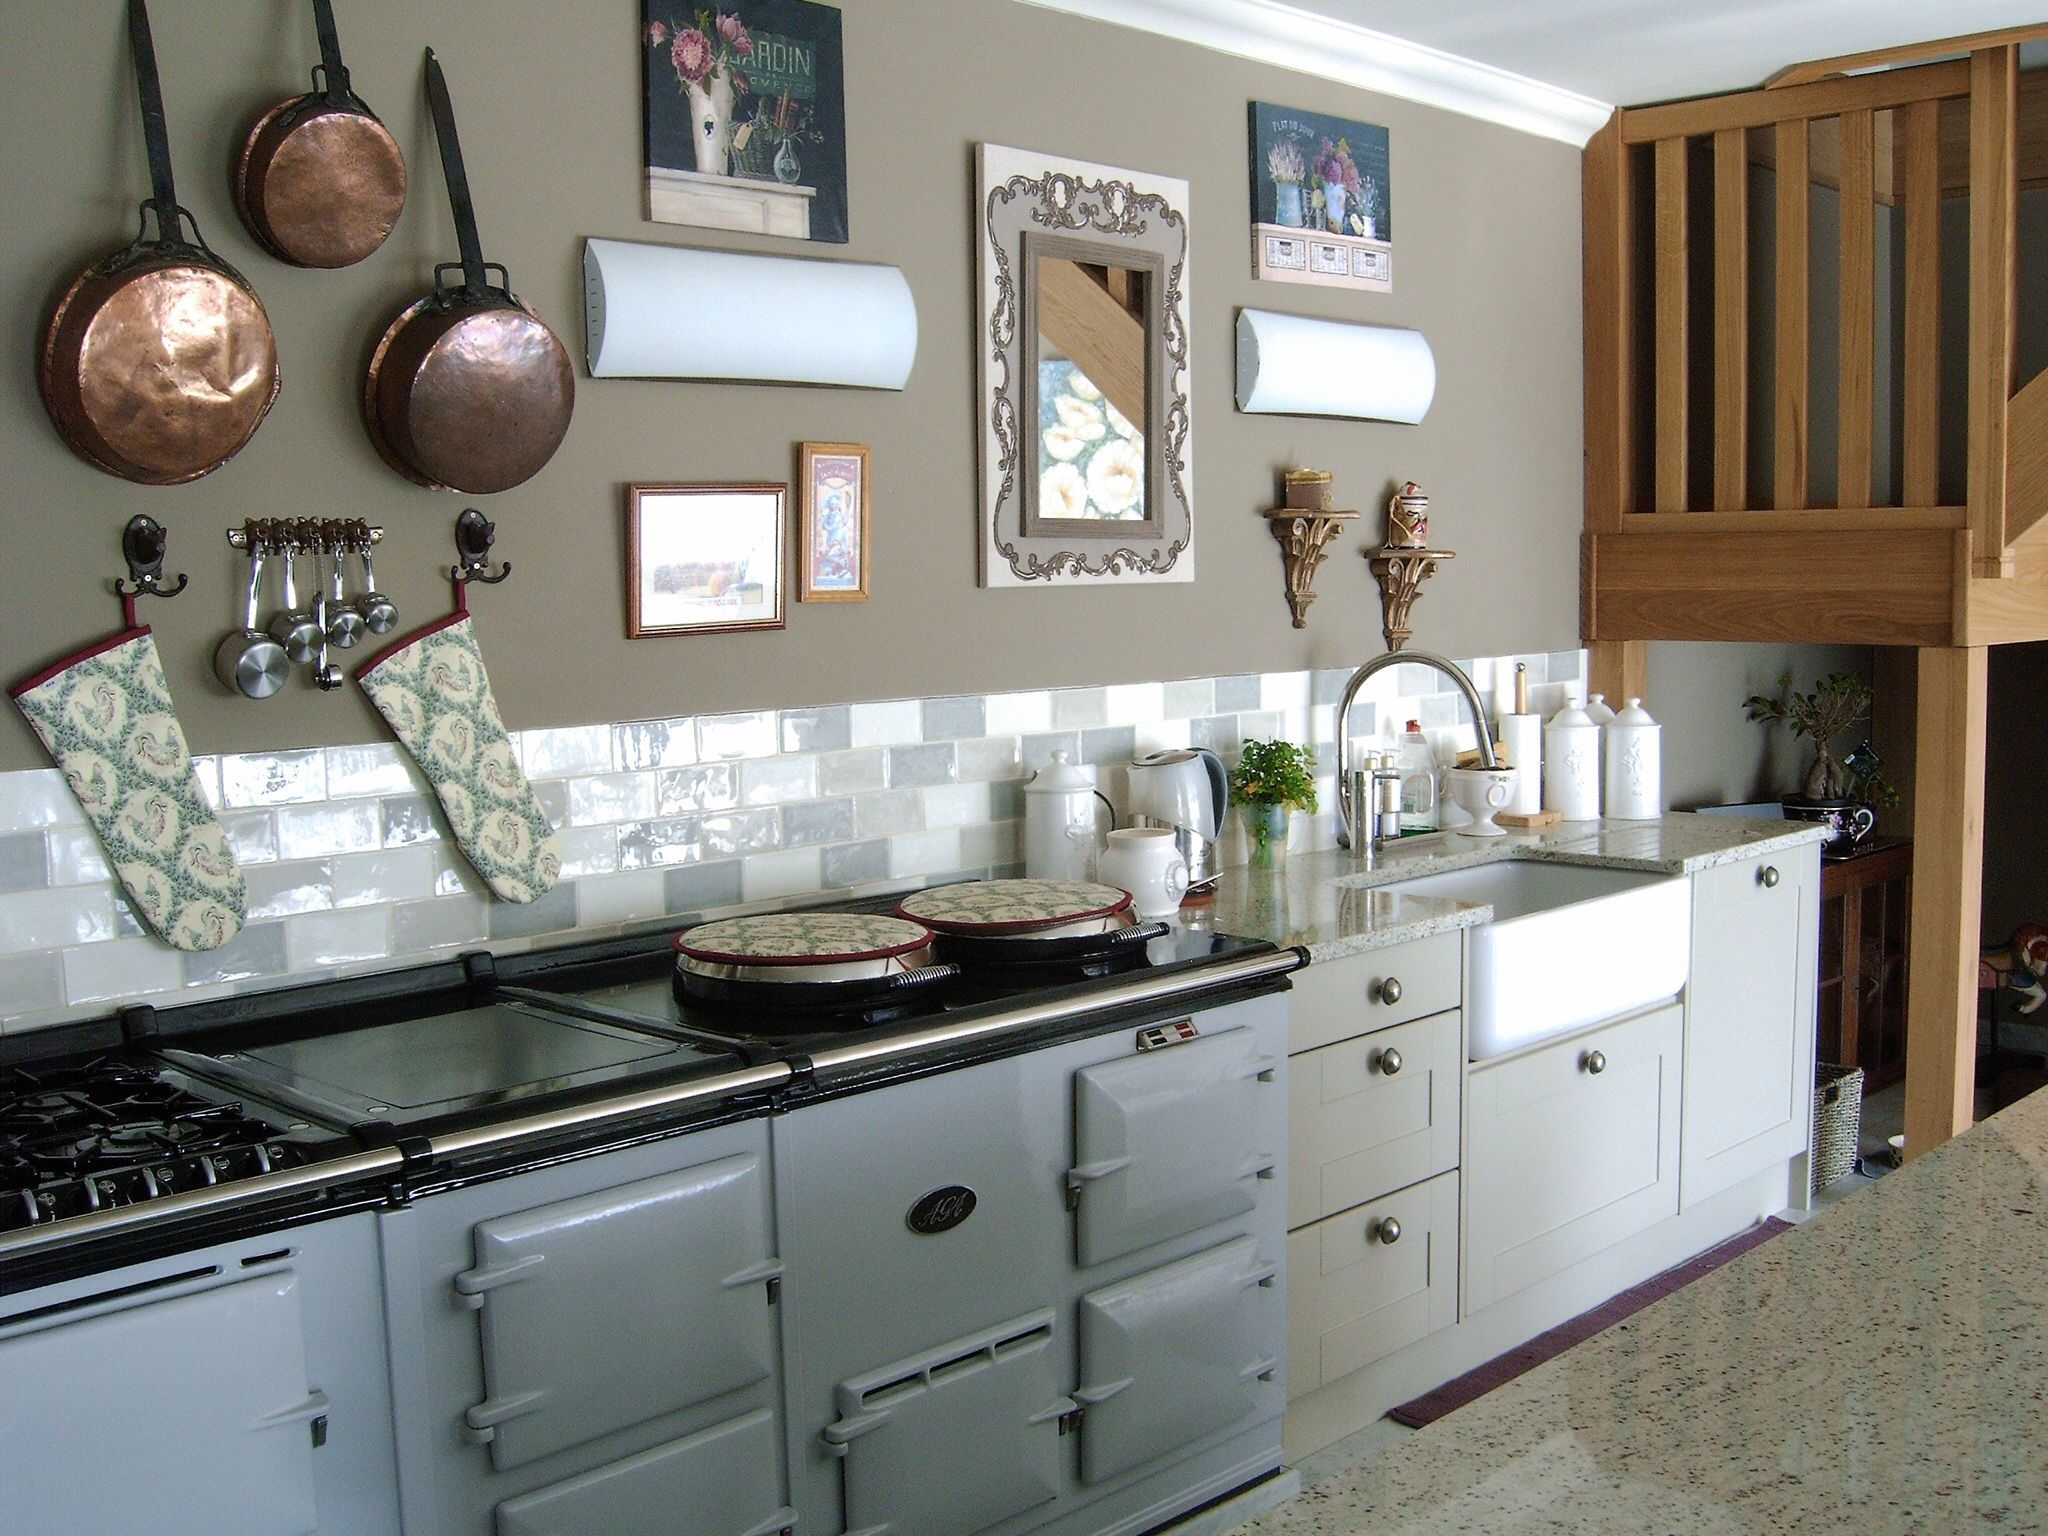 Marble Floors In Kitchen French Kitchen Large Aga In Pearl Ashes Carrara Marble Floors